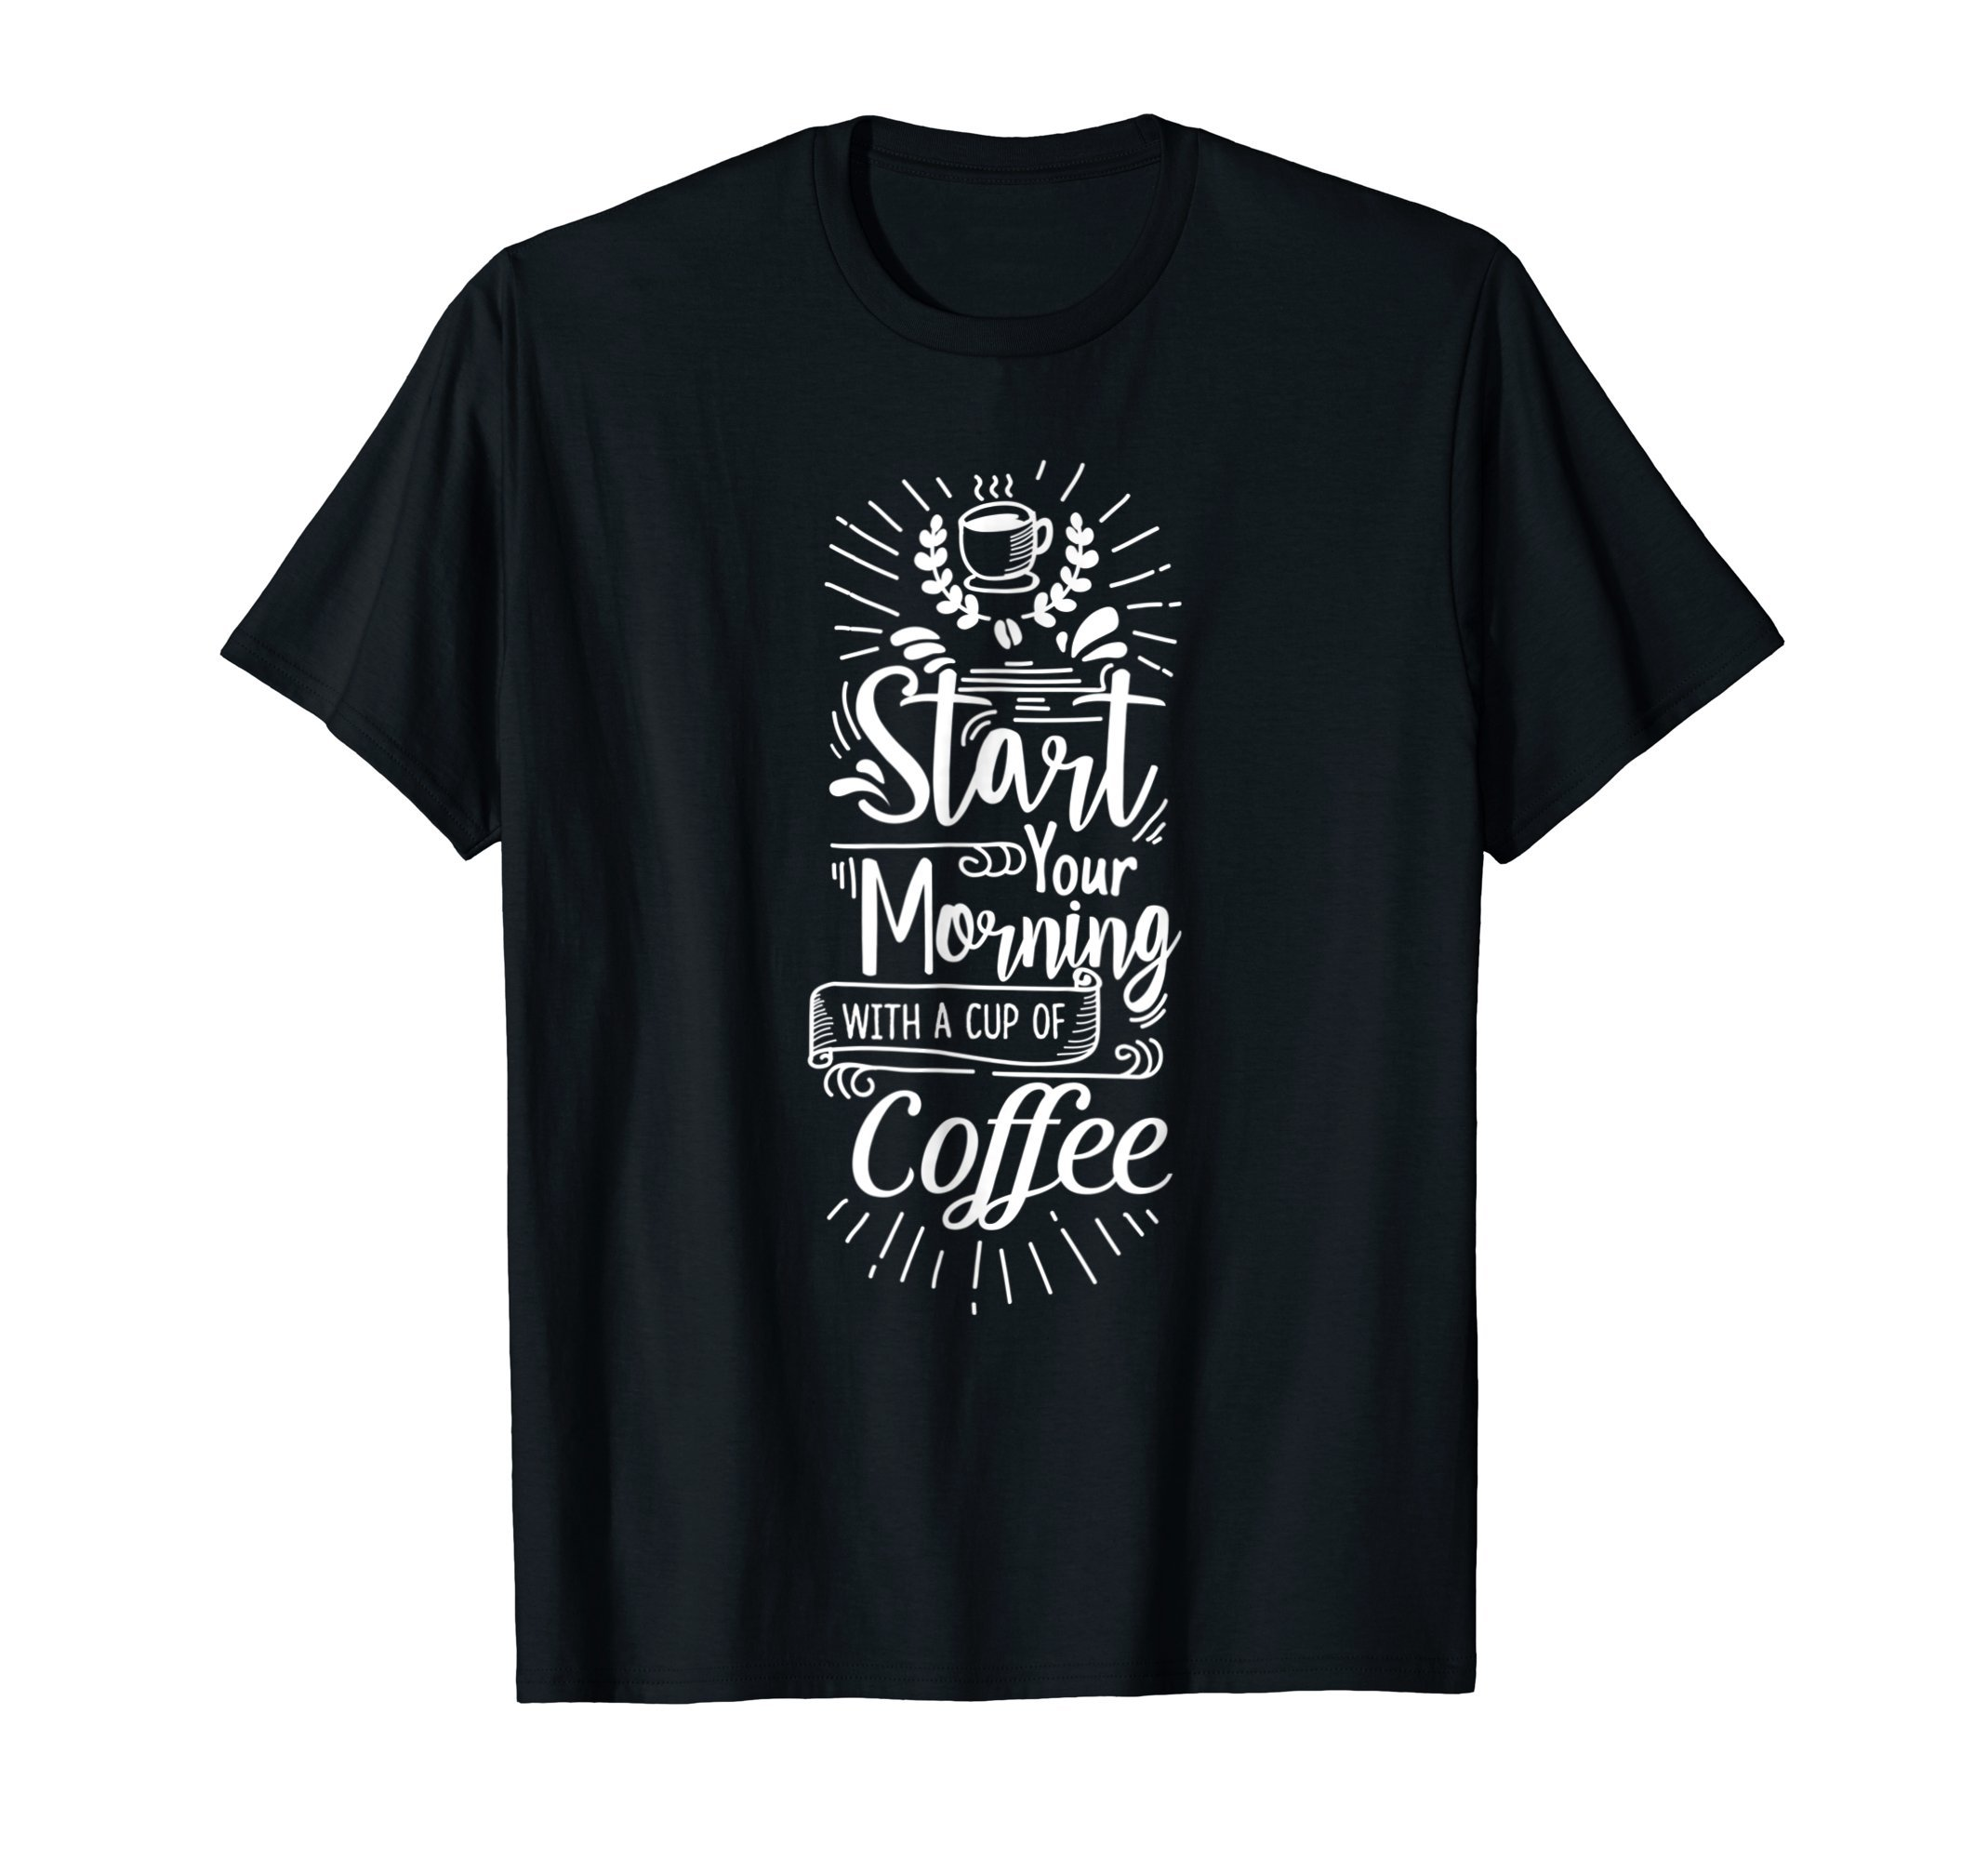 Start-your-morning-with-a-cup-of-coffee-Funny-Humor-T-Shirt